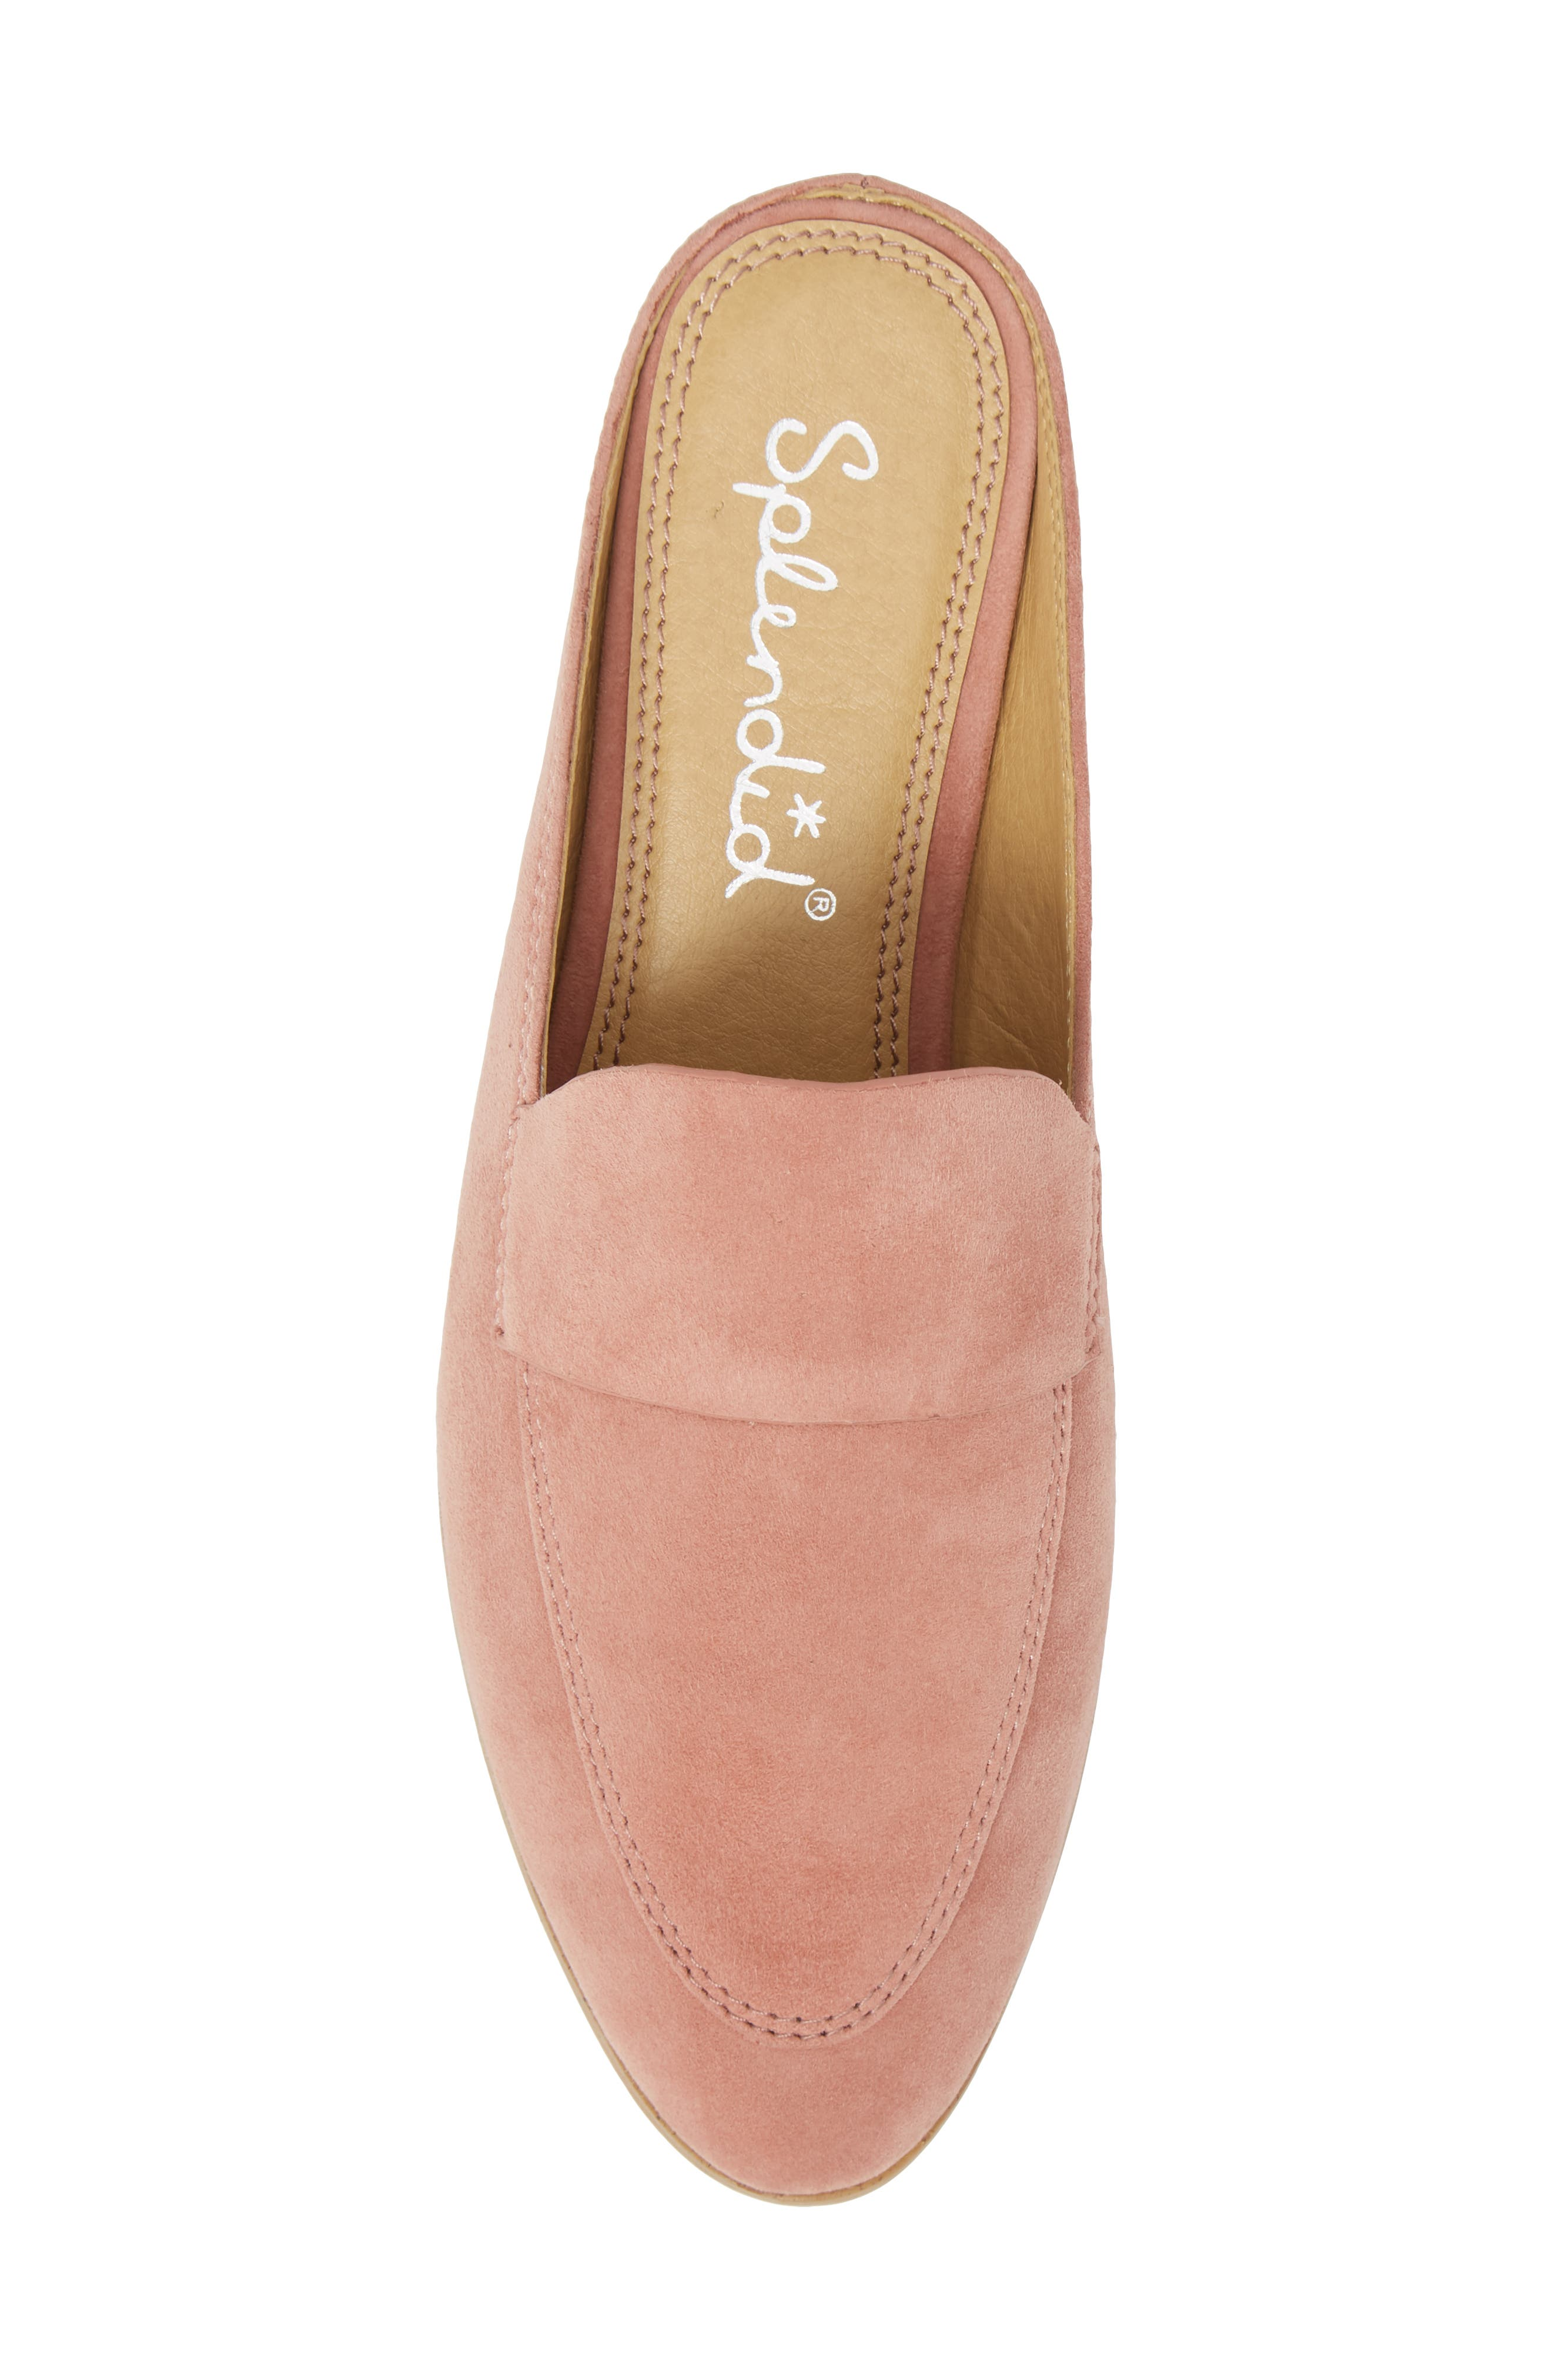 Nima Loafer Mule,                             Alternate thumbnail 5, color,                             ROSE TAUPE SUEDE